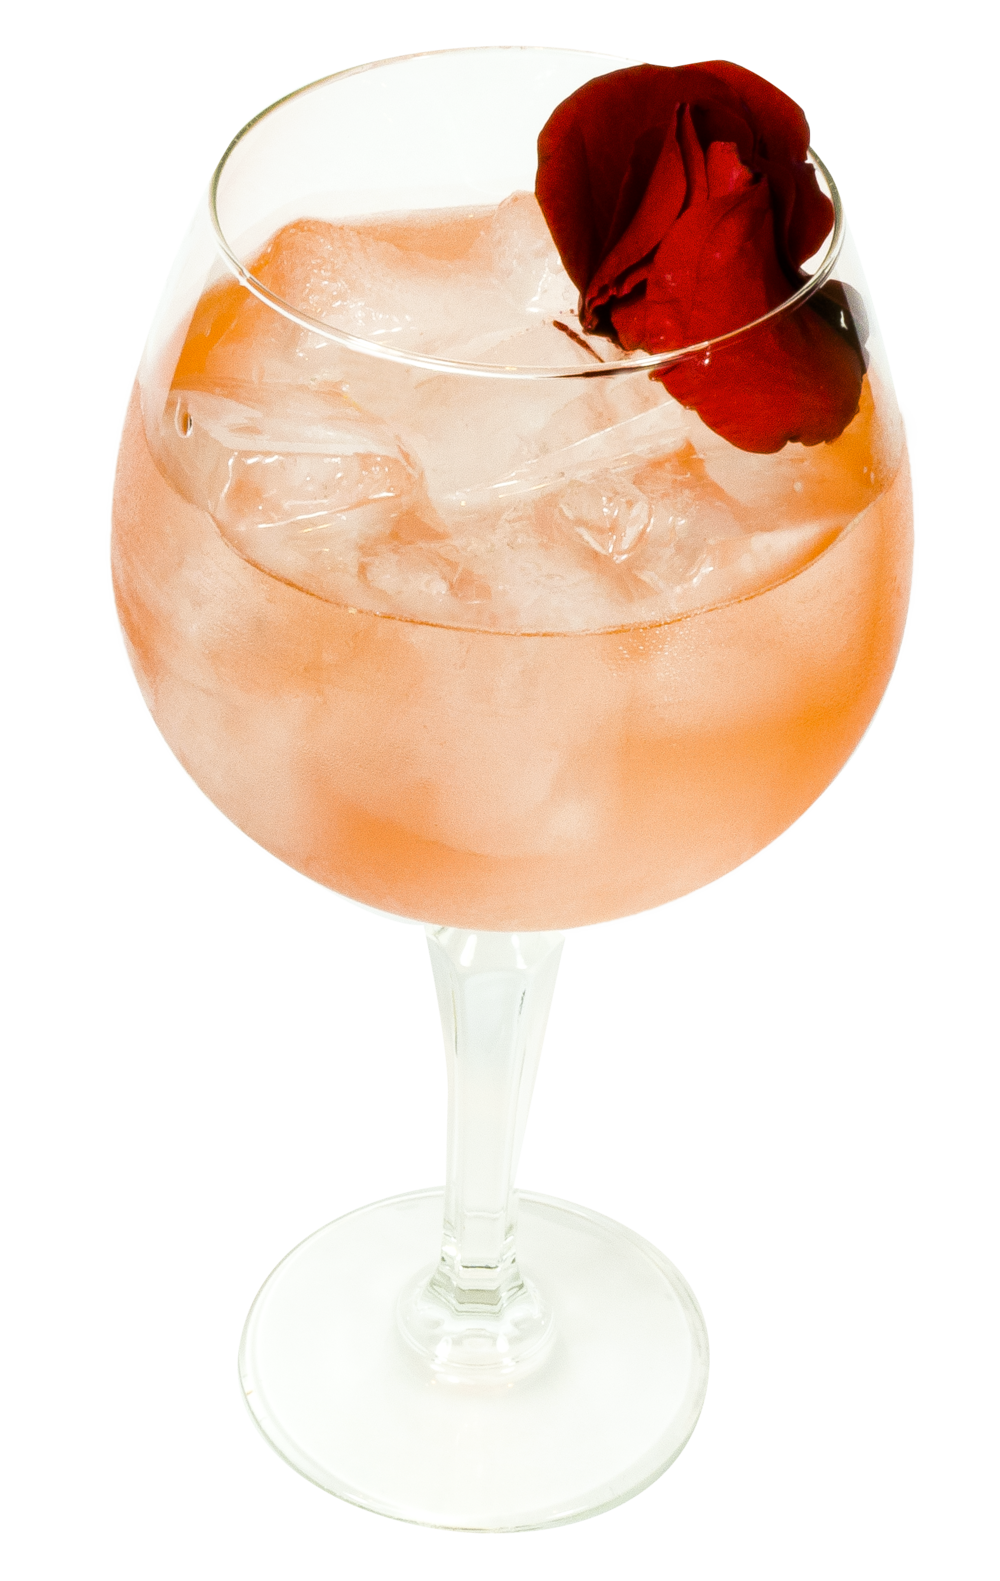 25ml Bath Gin 25ml Damson Bath Gin 12.5ml Escubac 25ml Pamplemousse Liqueur 12.5ml Lemon juice 75ml Rose Lemonade